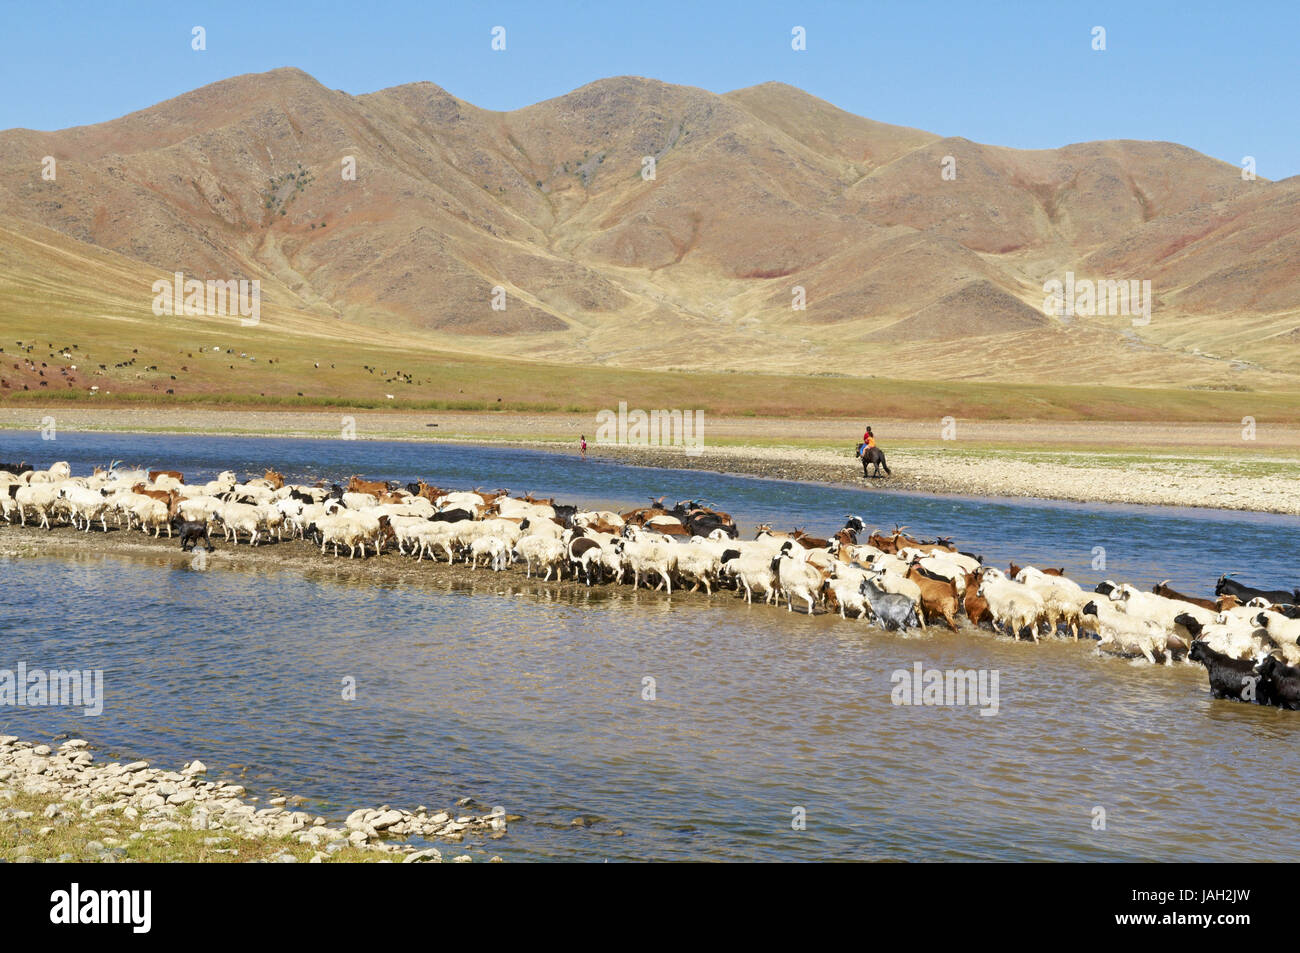 Mongolia,Central Asia,Ovorkhangai province,historical Orkhon valley,UNESCO world heritage,Orkhon flux,flock of sheep, Stock Photo